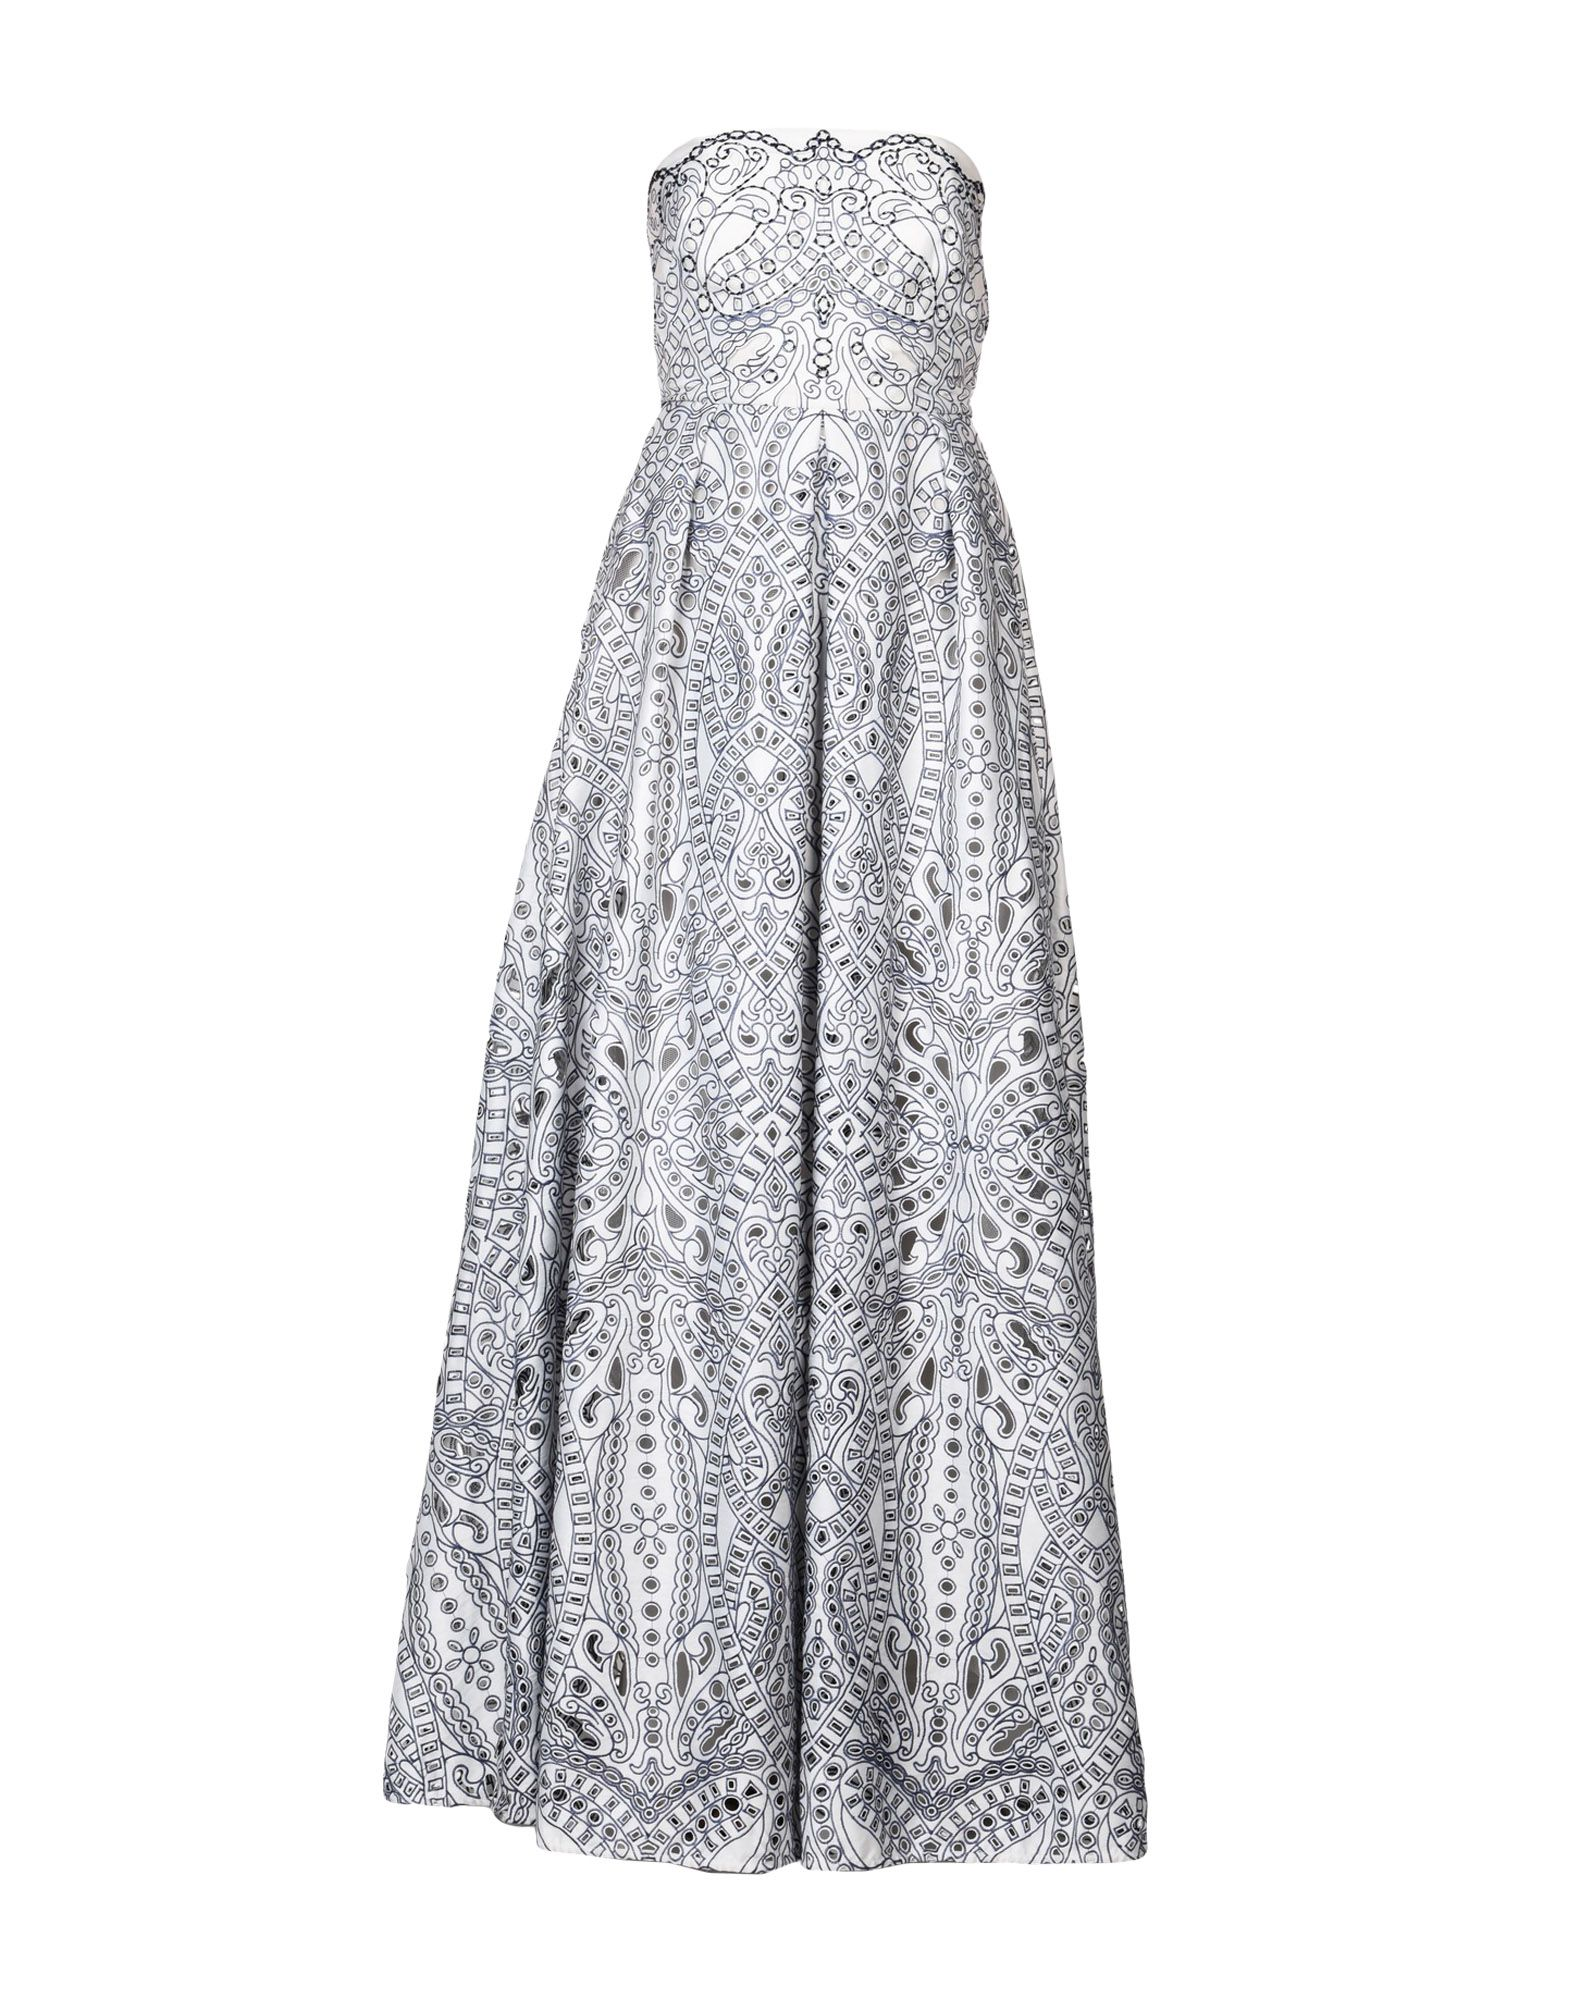 896f01a99b8 marchesa shop for women - women s marchesa catalogue - Cools.com